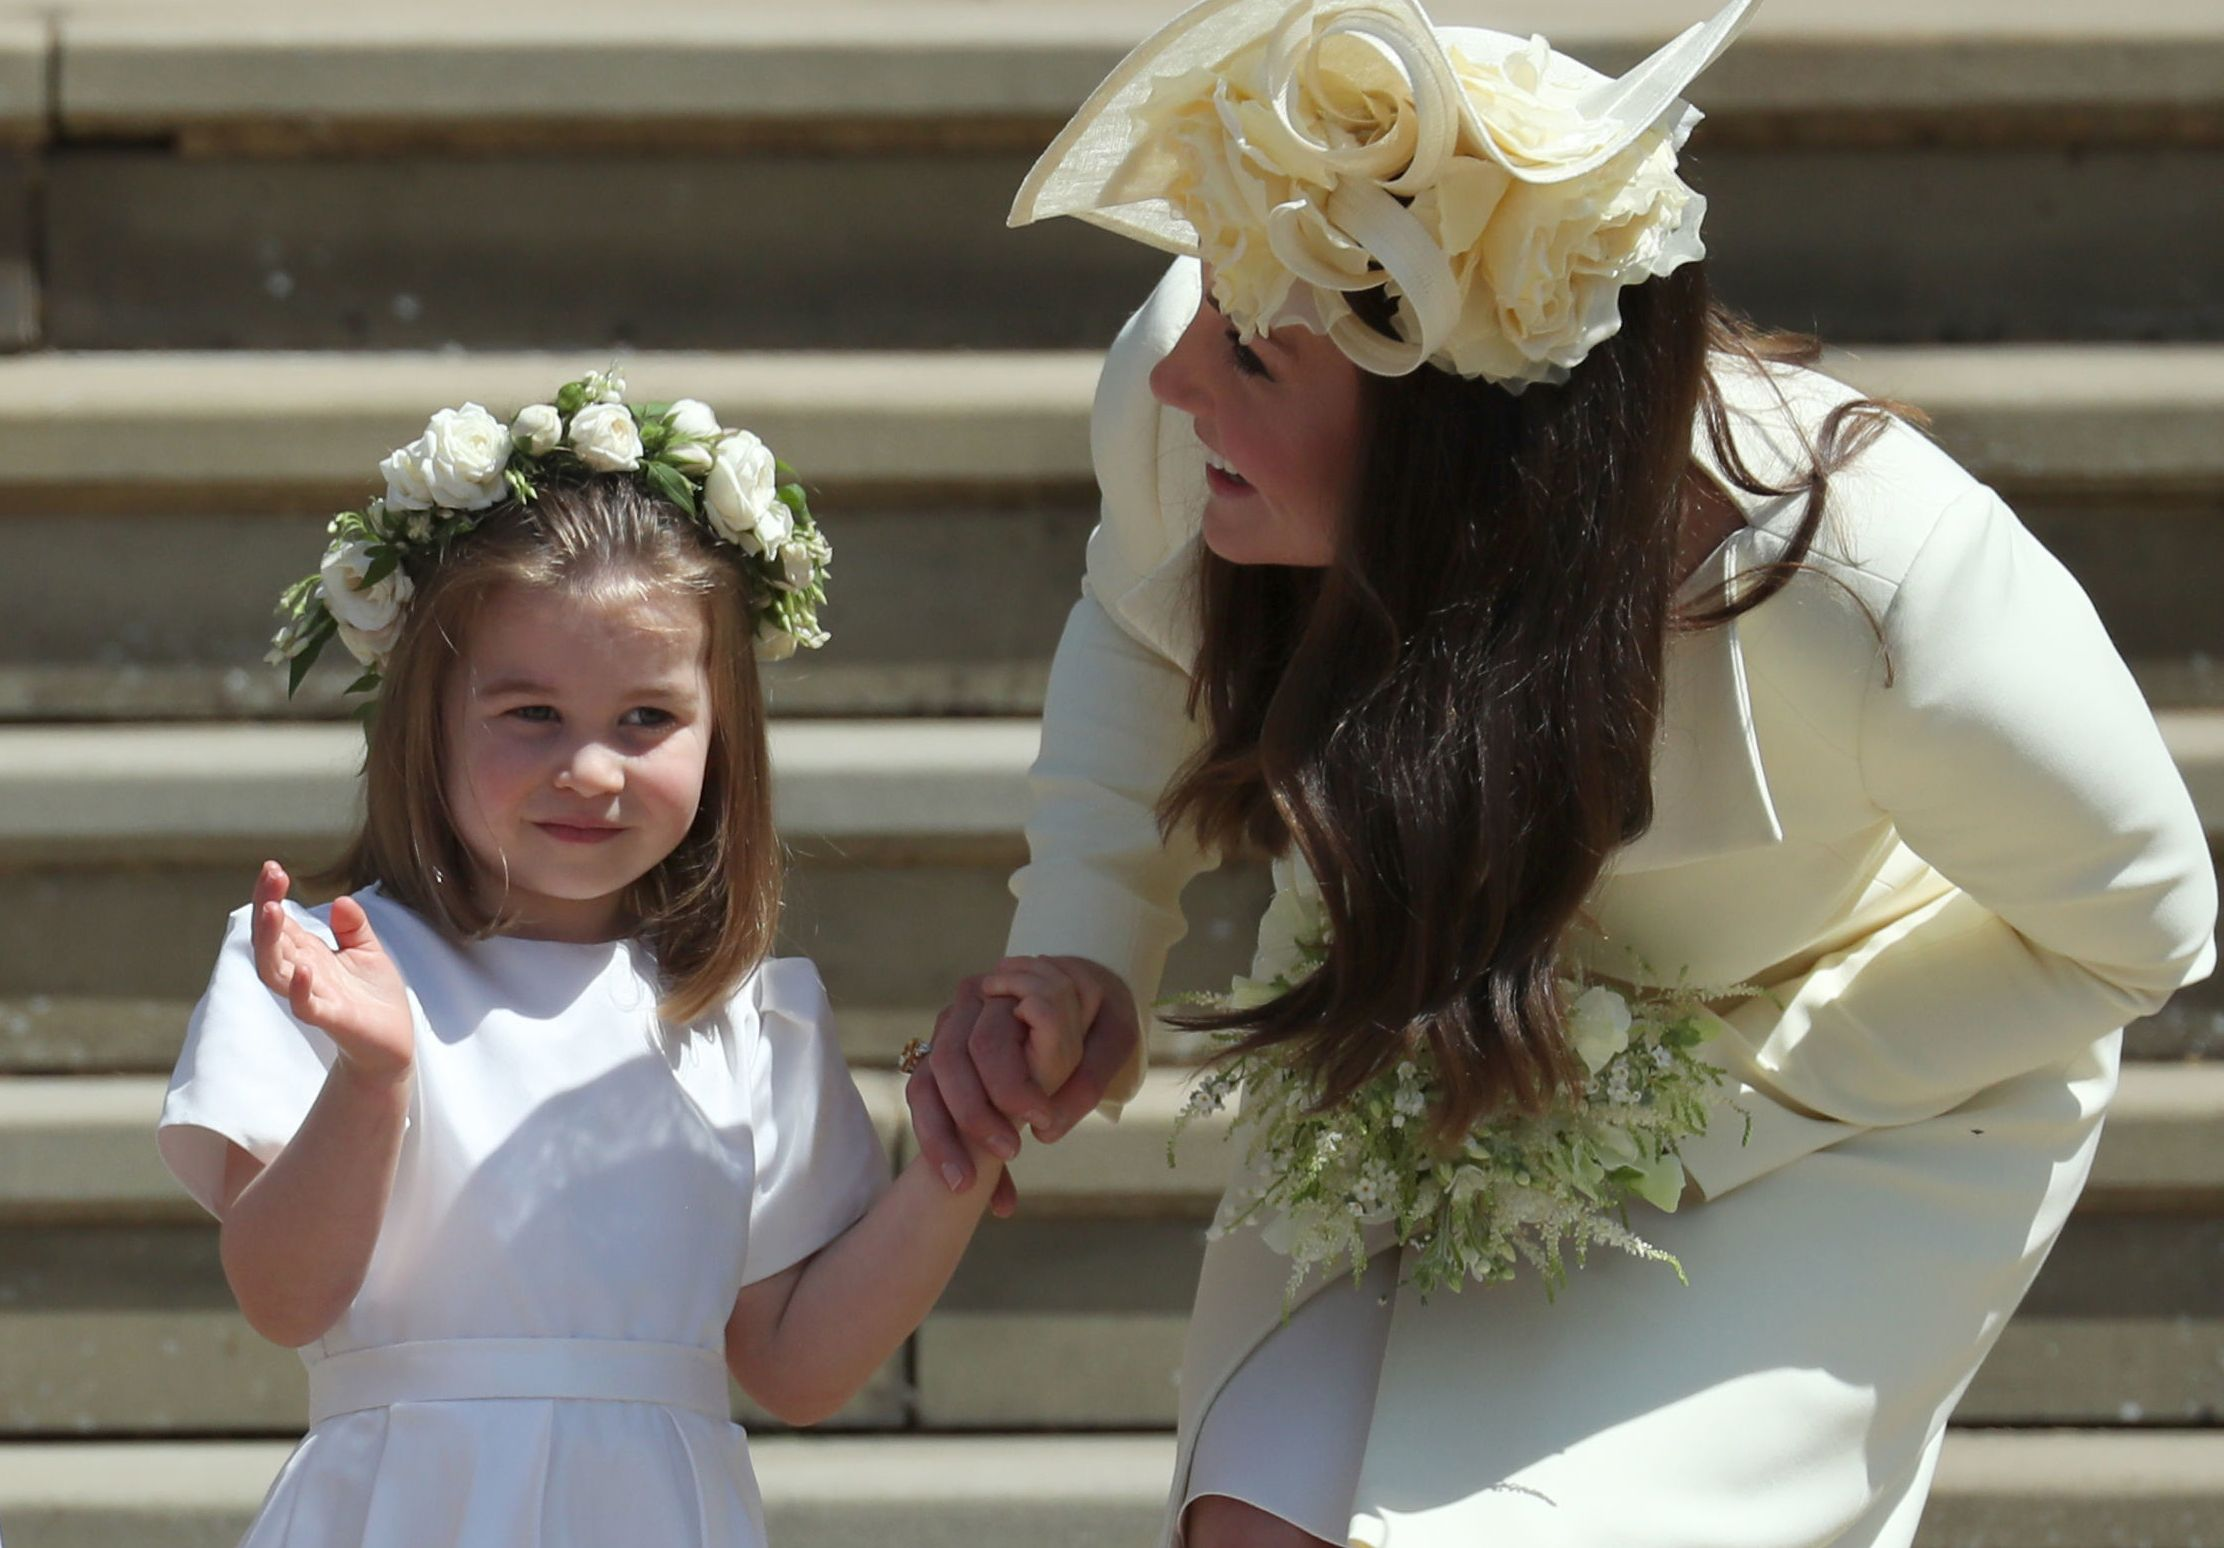 The Duchess of Cambridge shares a sweet new photo of Princess Charlotte